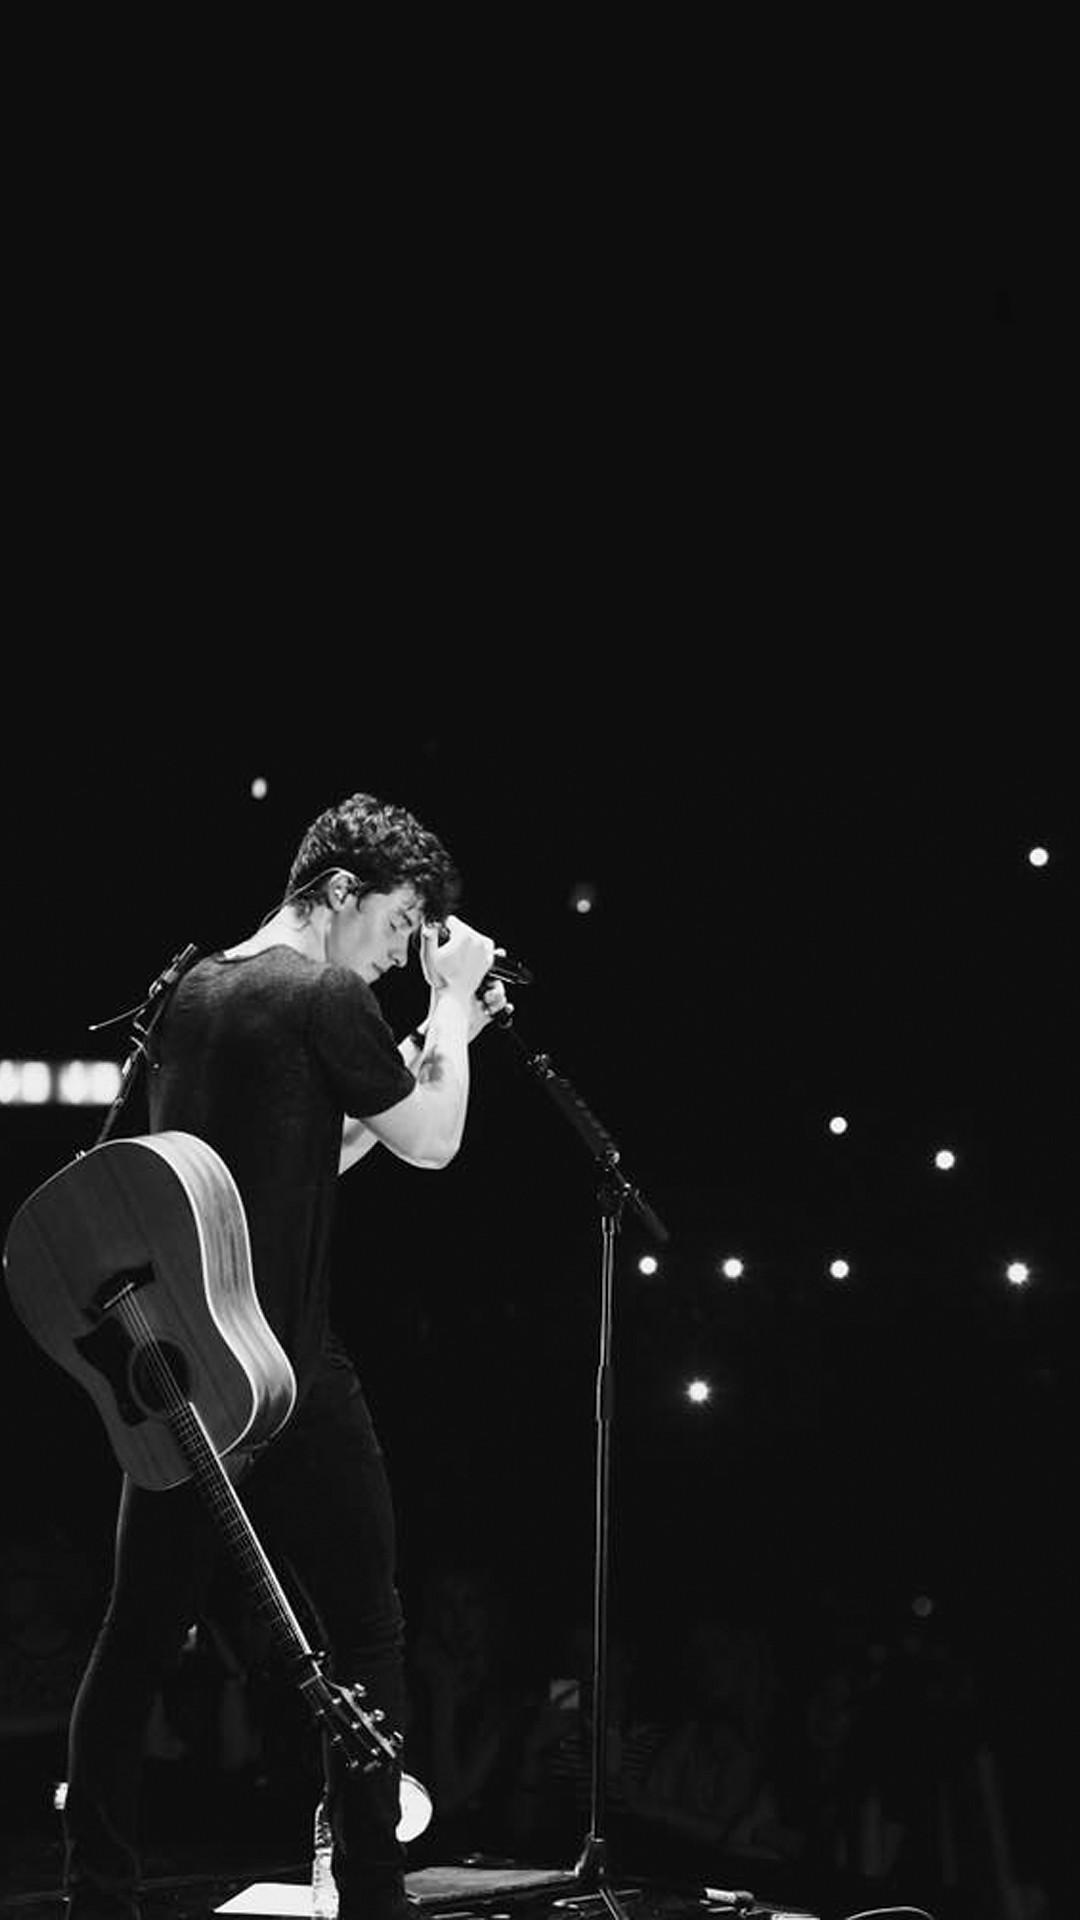 Shawn Mendes Wallpapers 81 images 1080x1920